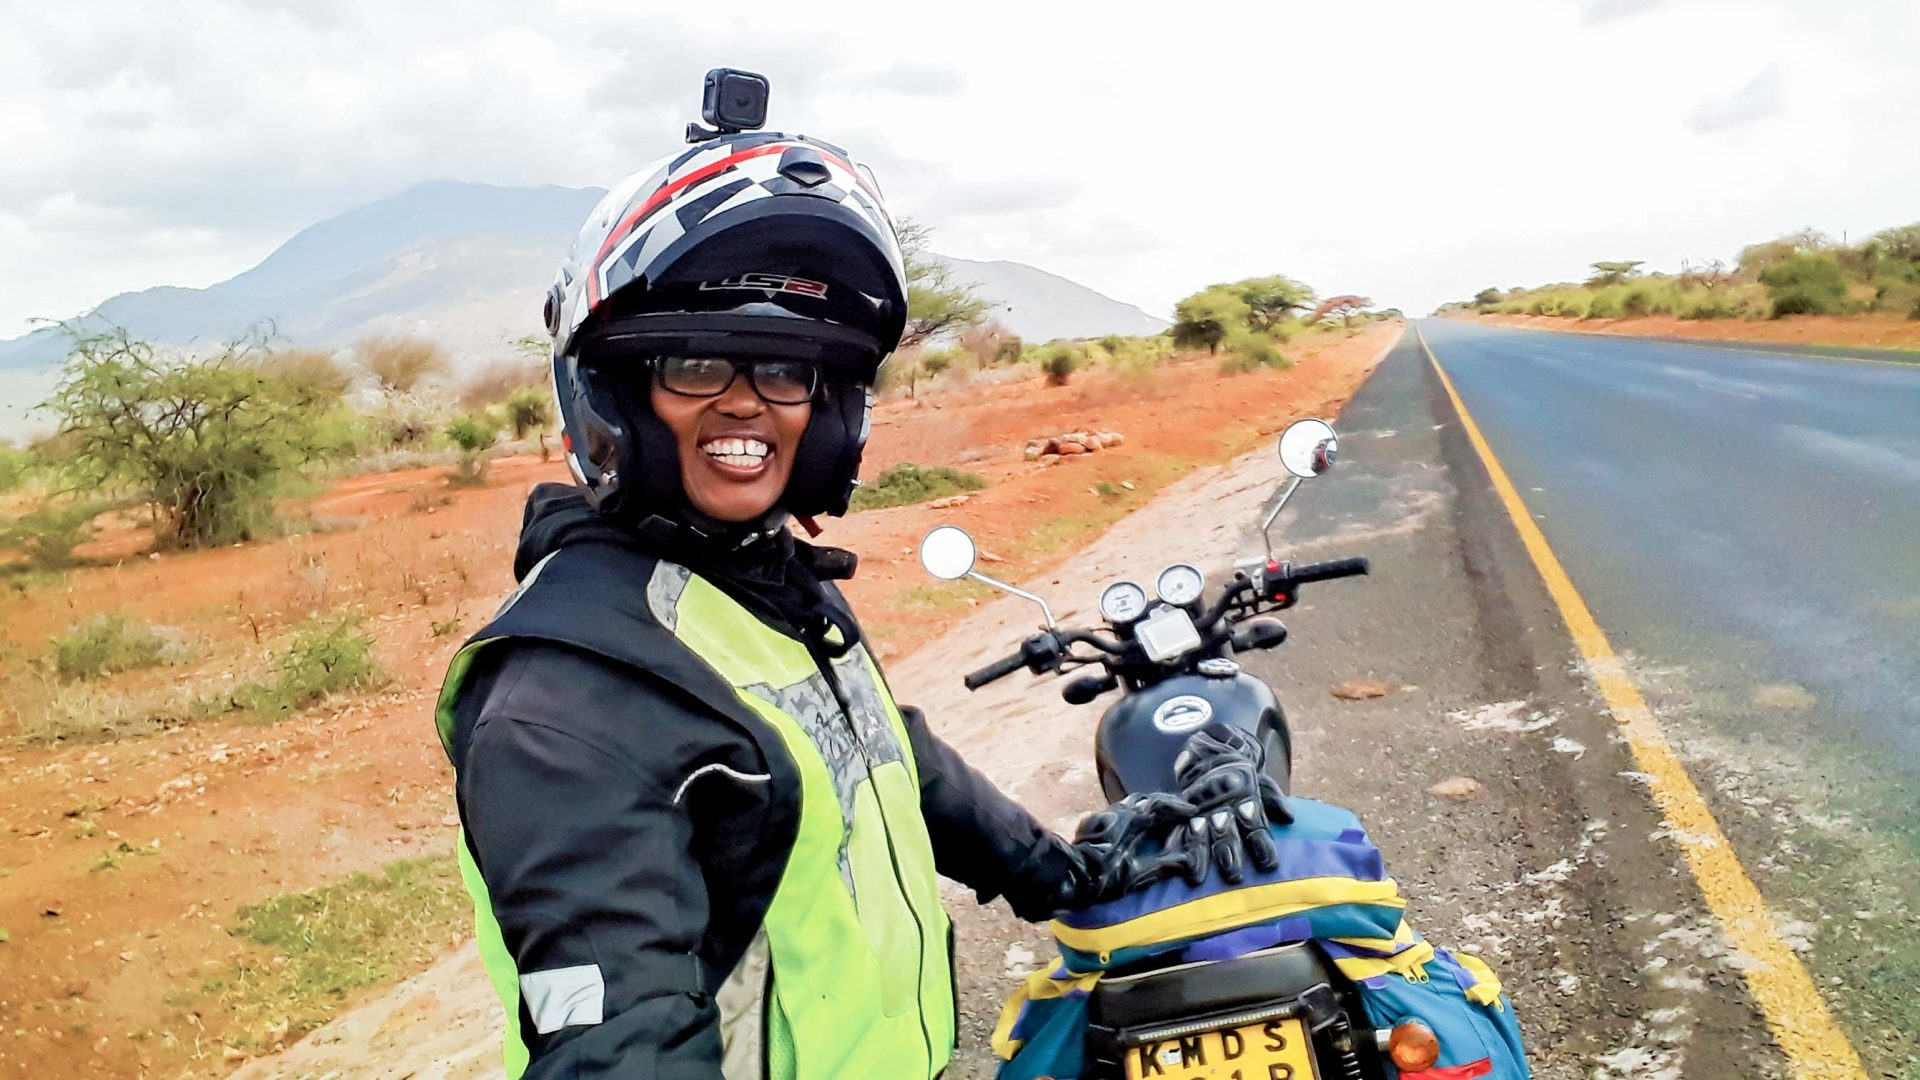 Wamuyu riding solo in Tanzania.